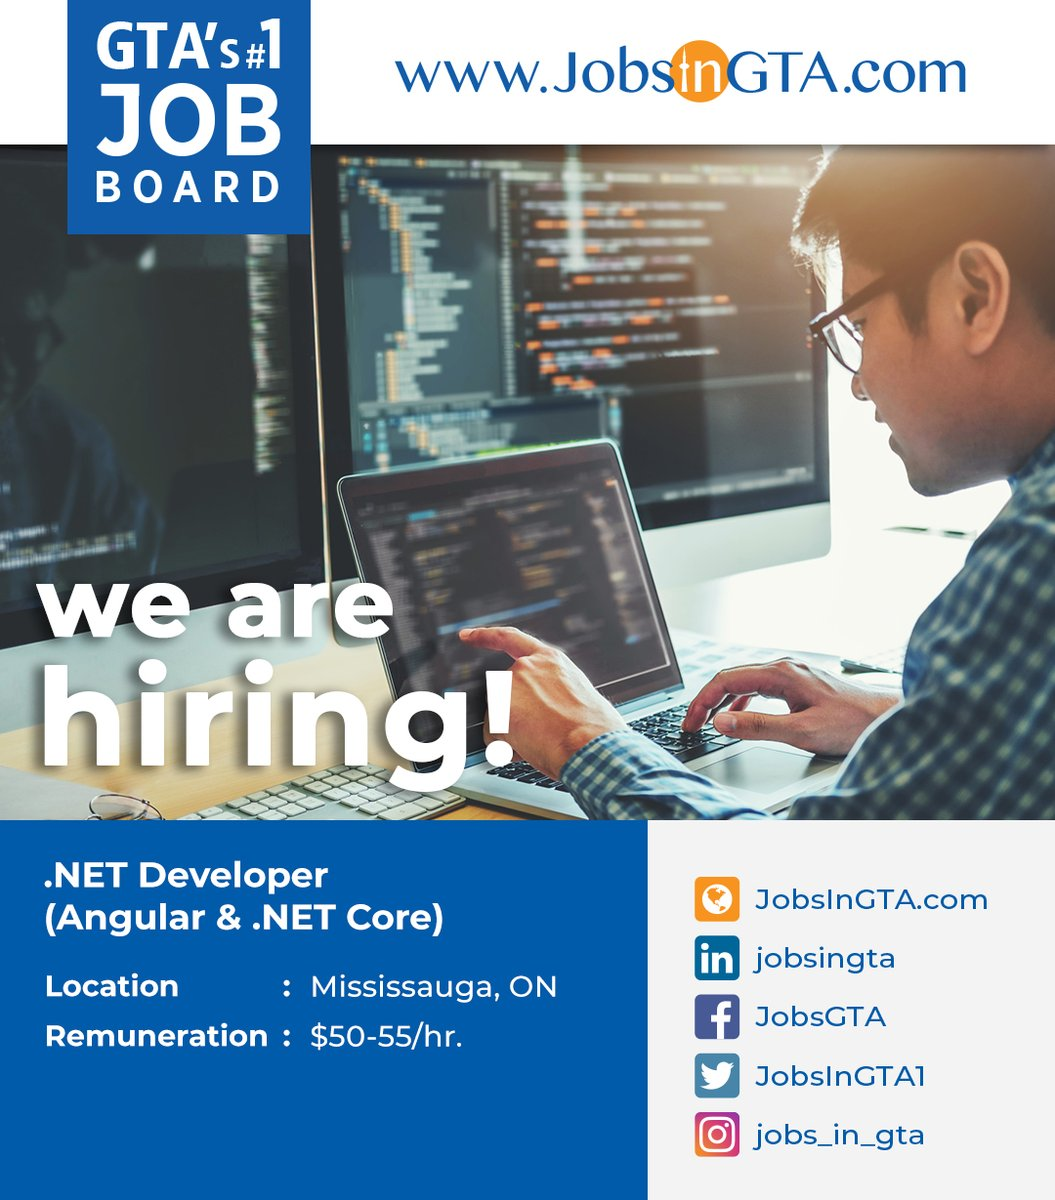 We're hiring ! We're looking for .NET Developer  Apply: https://t.co/M7QPRLt7Mv  #JobsInGTA #WorkFromHome #DeveloperJobs #ITJobs #DreamJob #Vacancy #Hiring #jobs #TorontoJobs #StayHome #StaySafe #TuesdayMotivation #GAOTek #Ontario #GTA #Pickering #Canada https://t.co/AUsellznIK